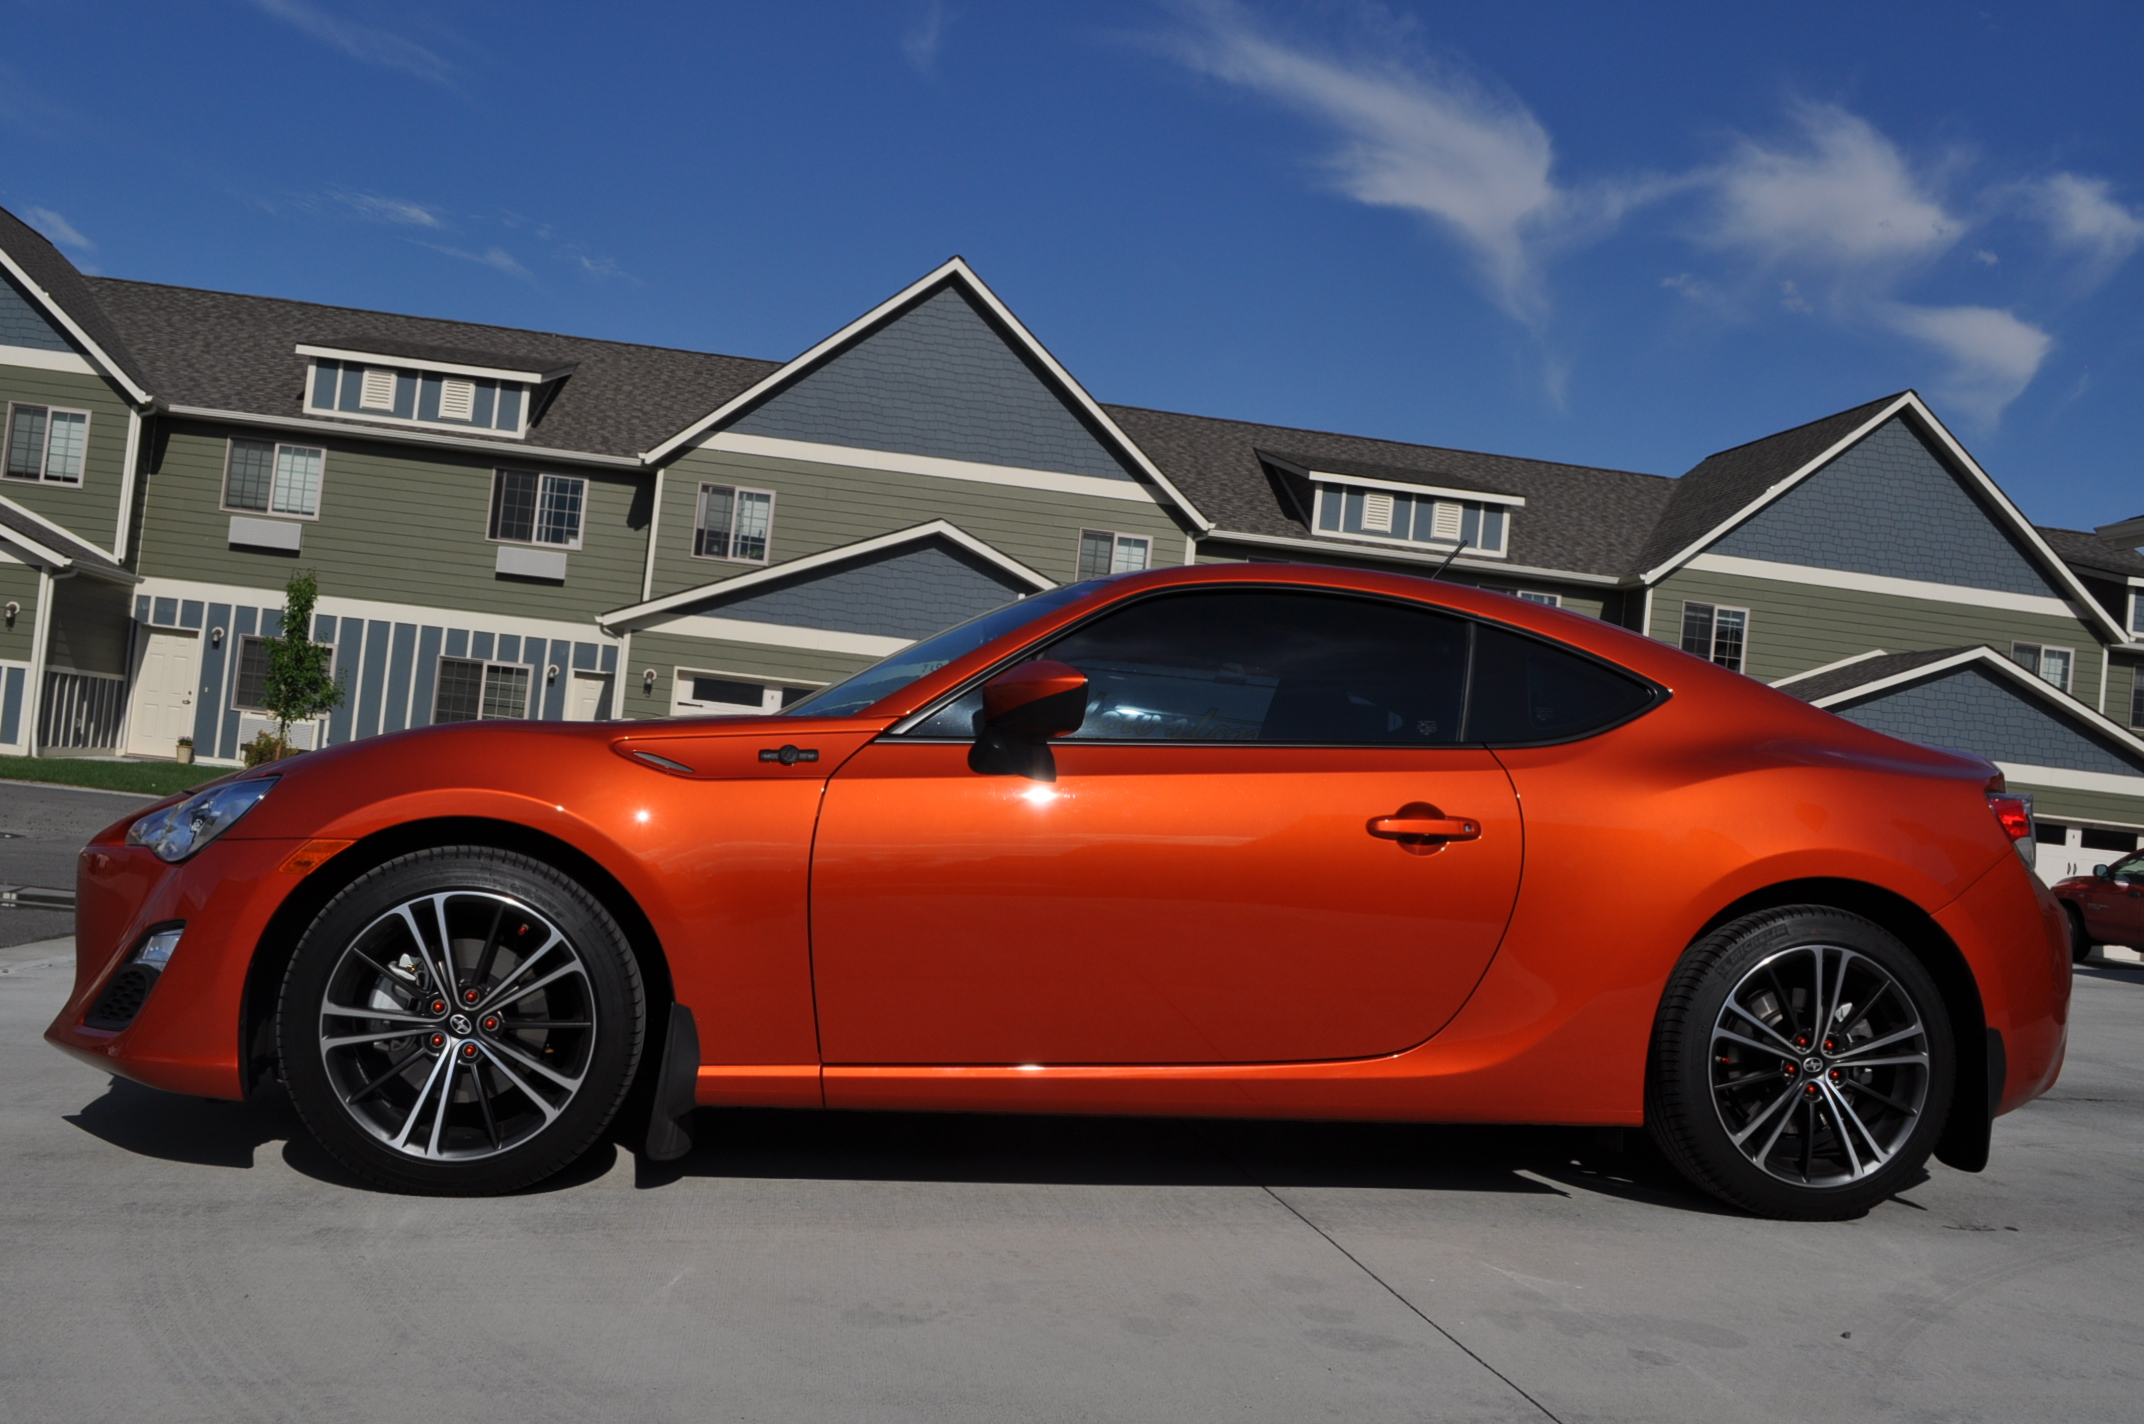 Cut down my 2 color choices to red or hot lava - Scion FR ...